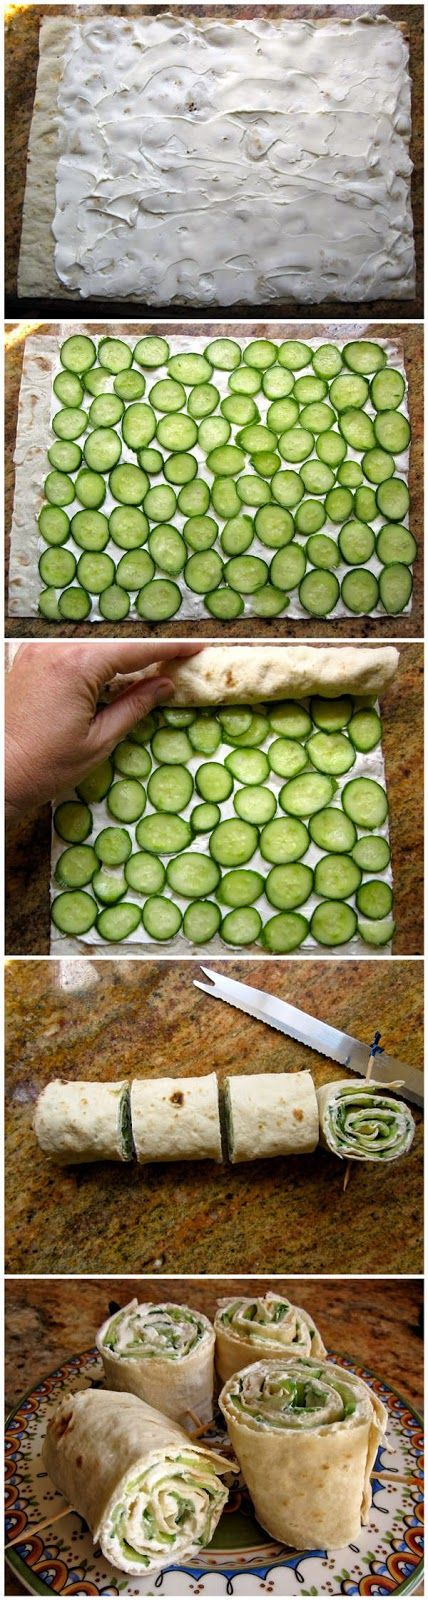 Cucumber and Cream Cheese Sandwich Rolls | lookchef